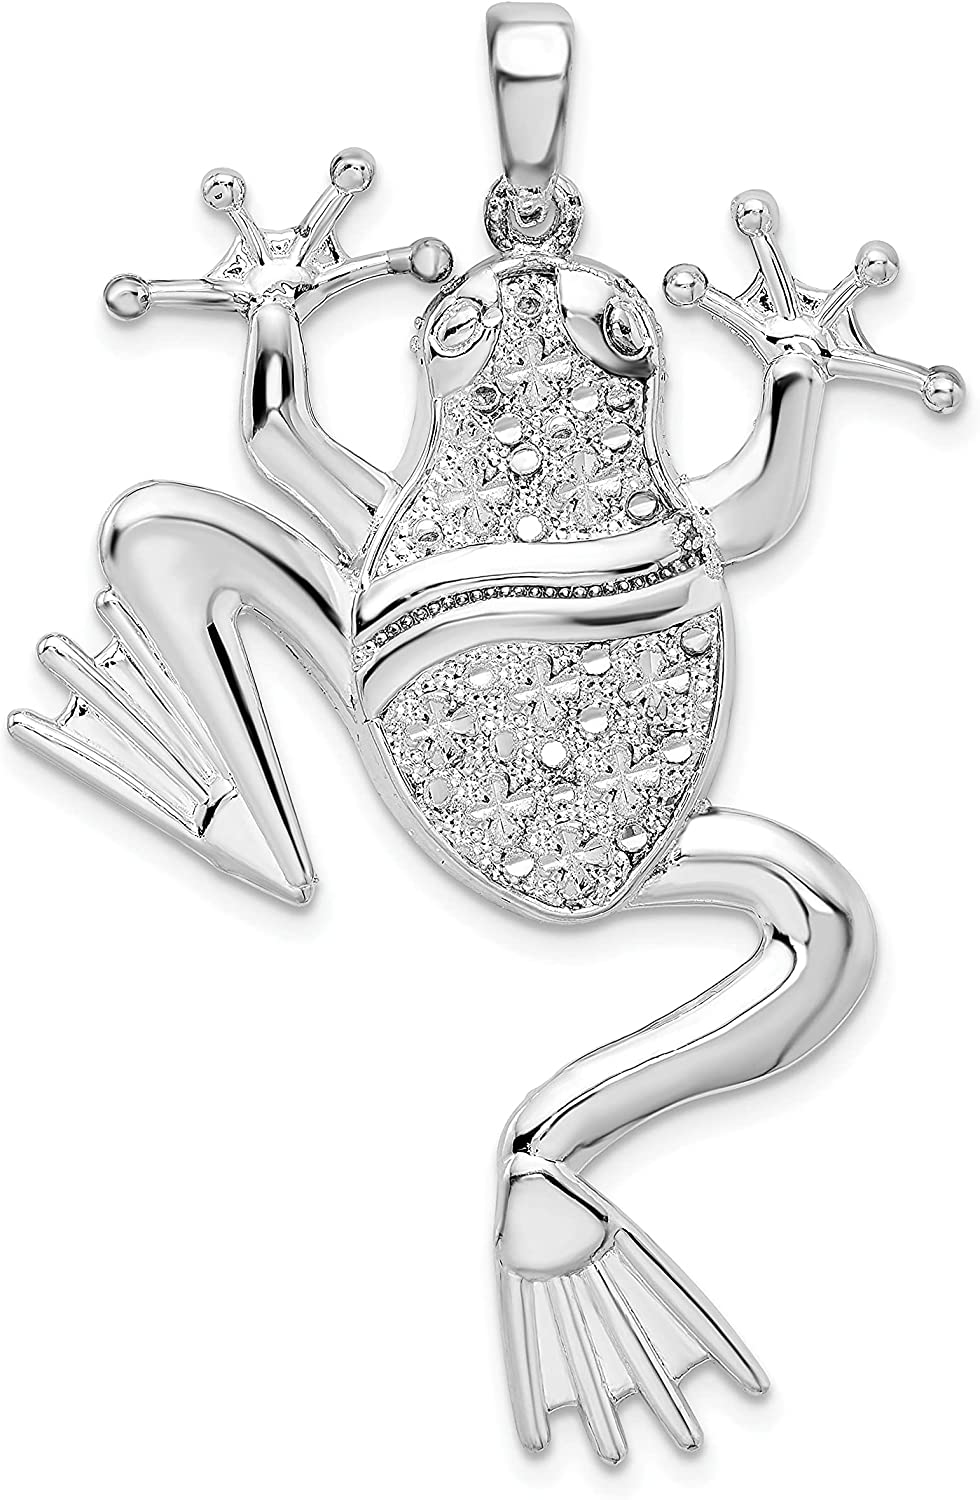 Million Charms 925 Sterling Many popular brands Animal Polished Pe Frog Large Charm All stores are sold